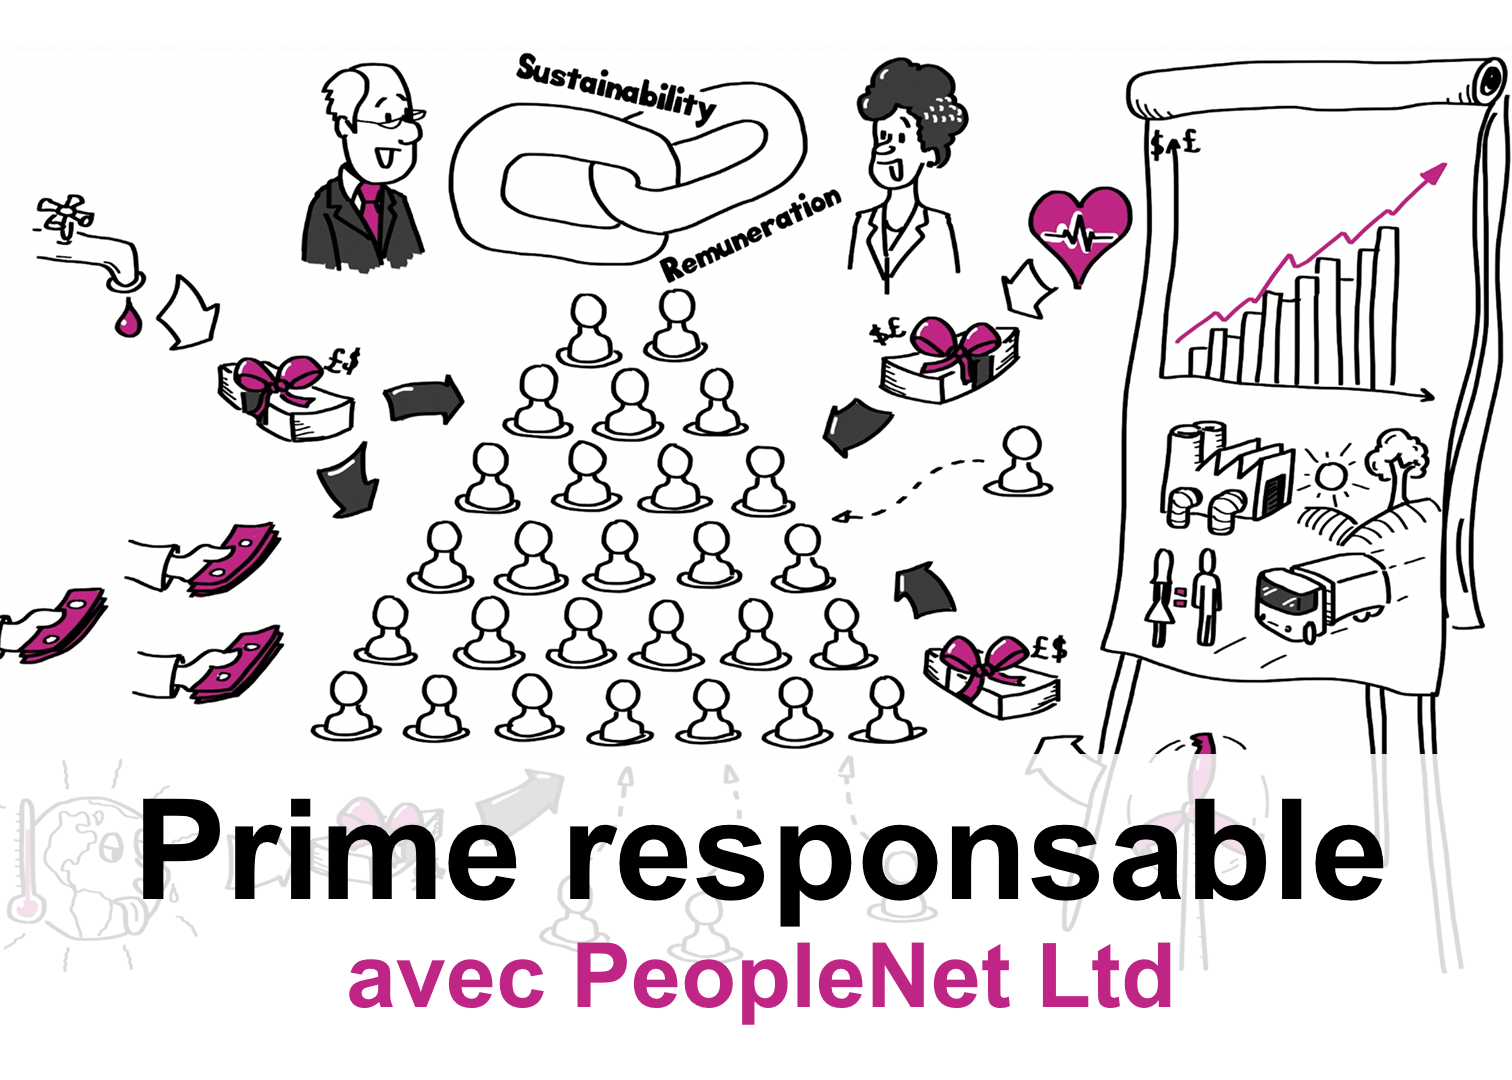 Prime responsable – PeopleNet Ltd.